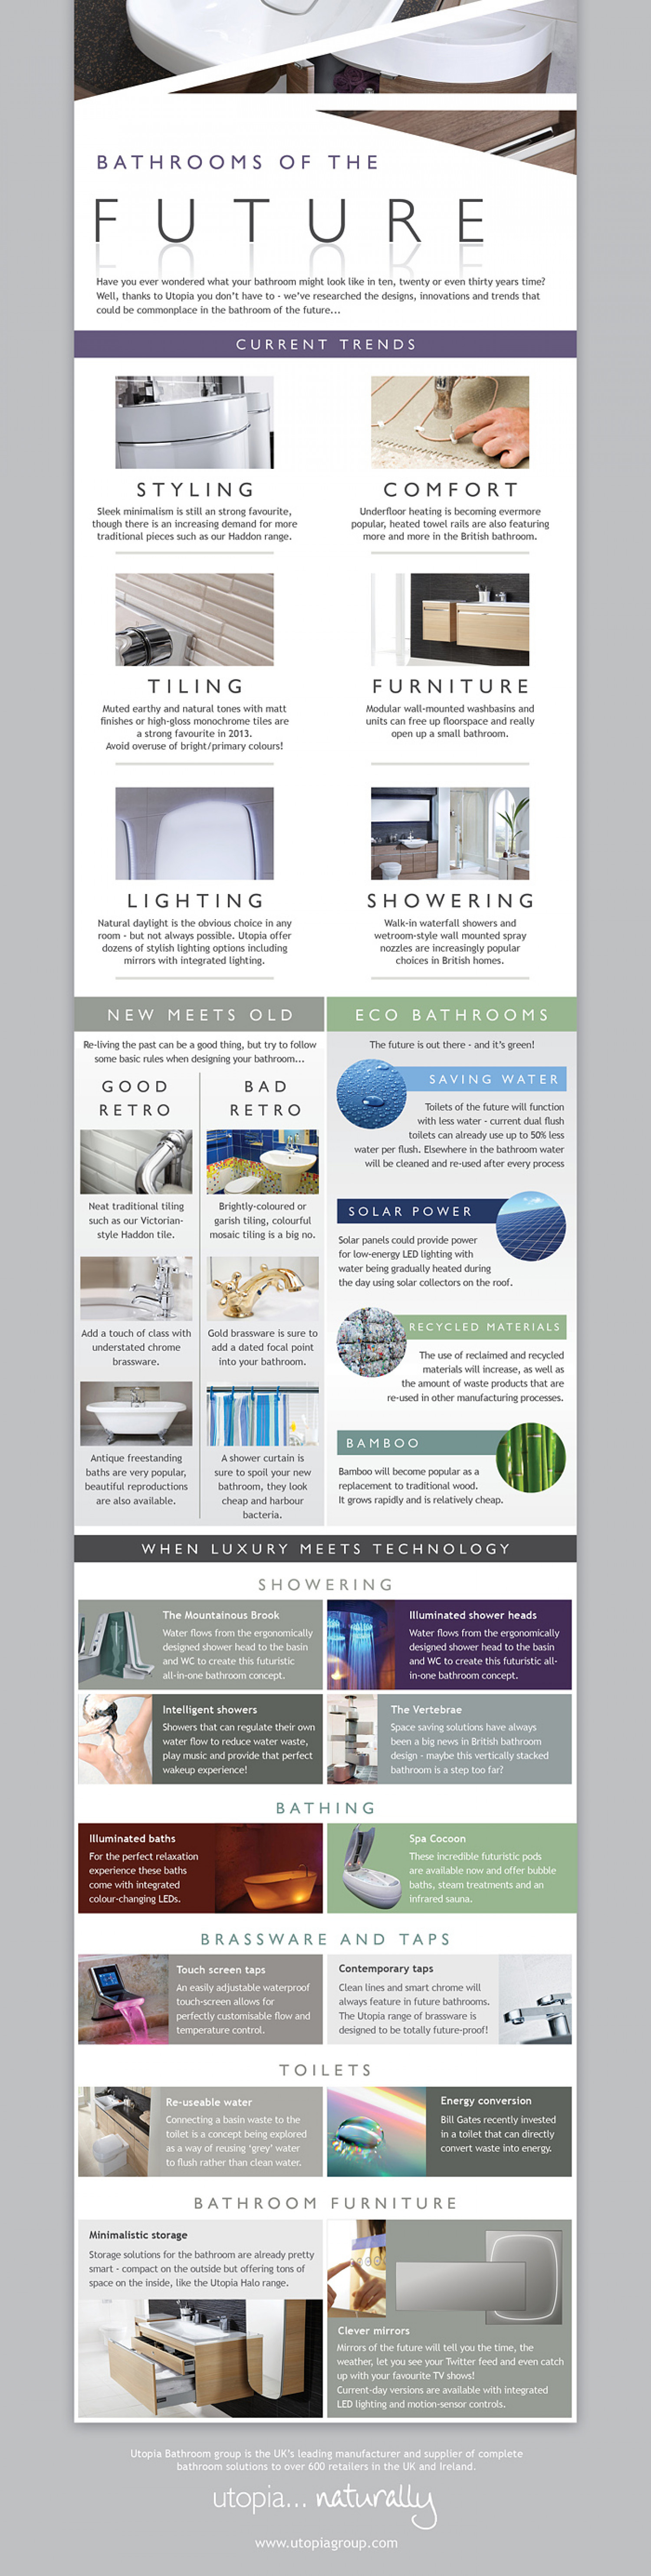 Bathrooms of the Future Infographic